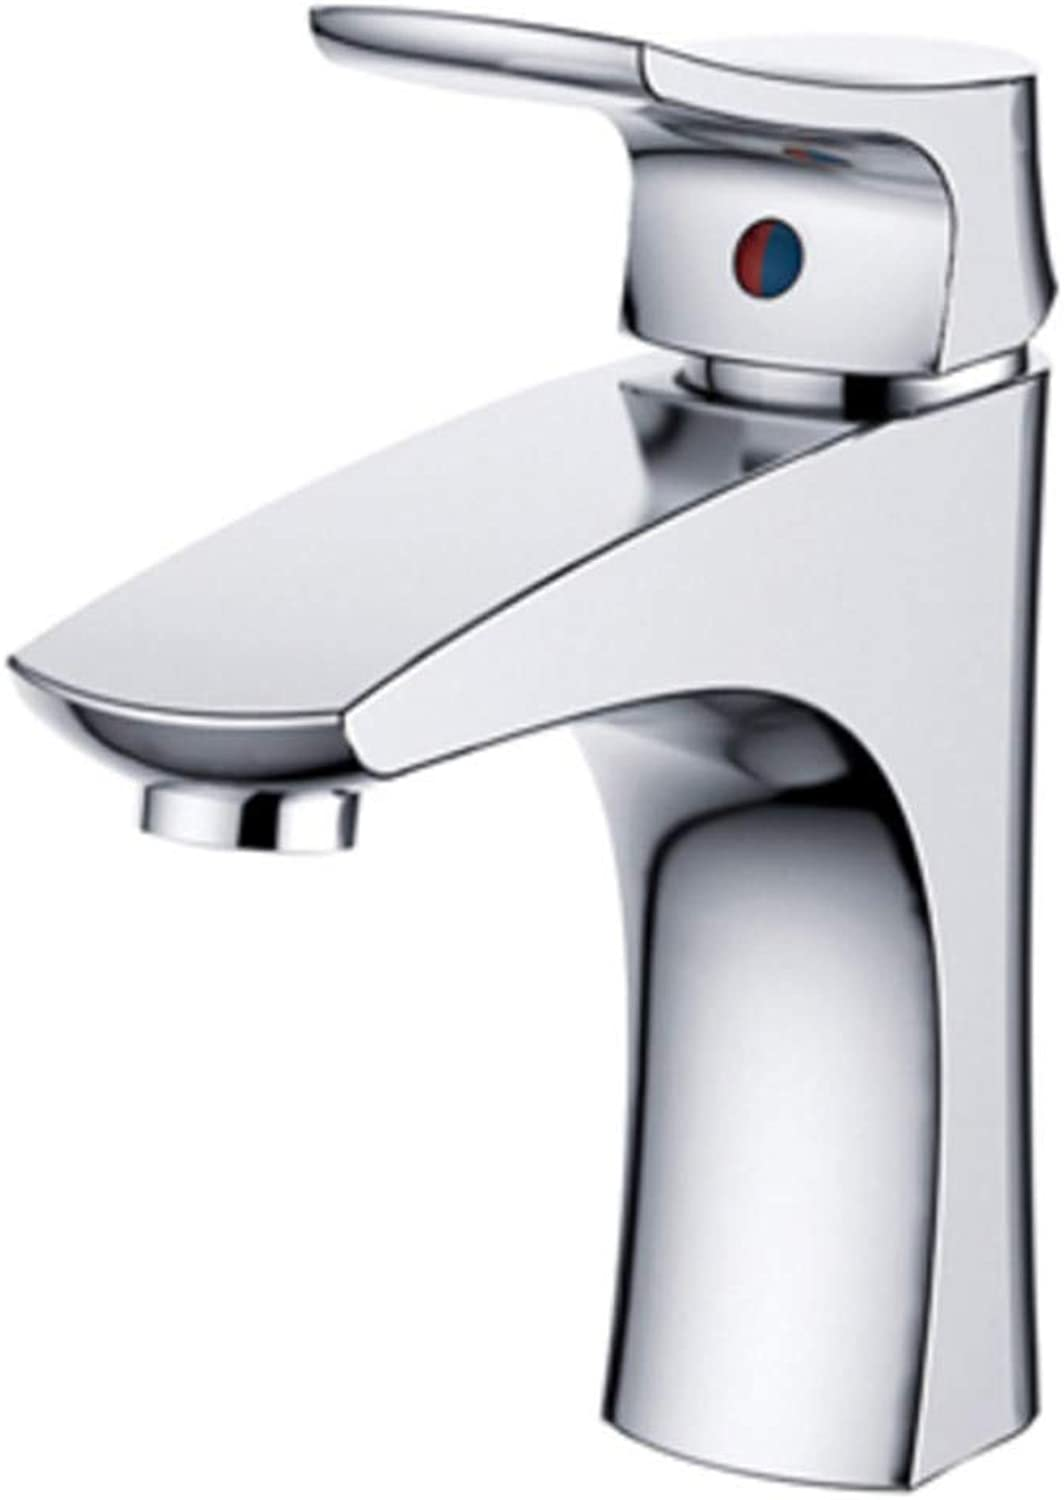 Faucet Washbasin Great Quality at A Great Price New Basin Faucet Bath Basin Faucet Mixer Mixer Waterfall Bathroom Chrome Hot and Cold Water Faucet Deck